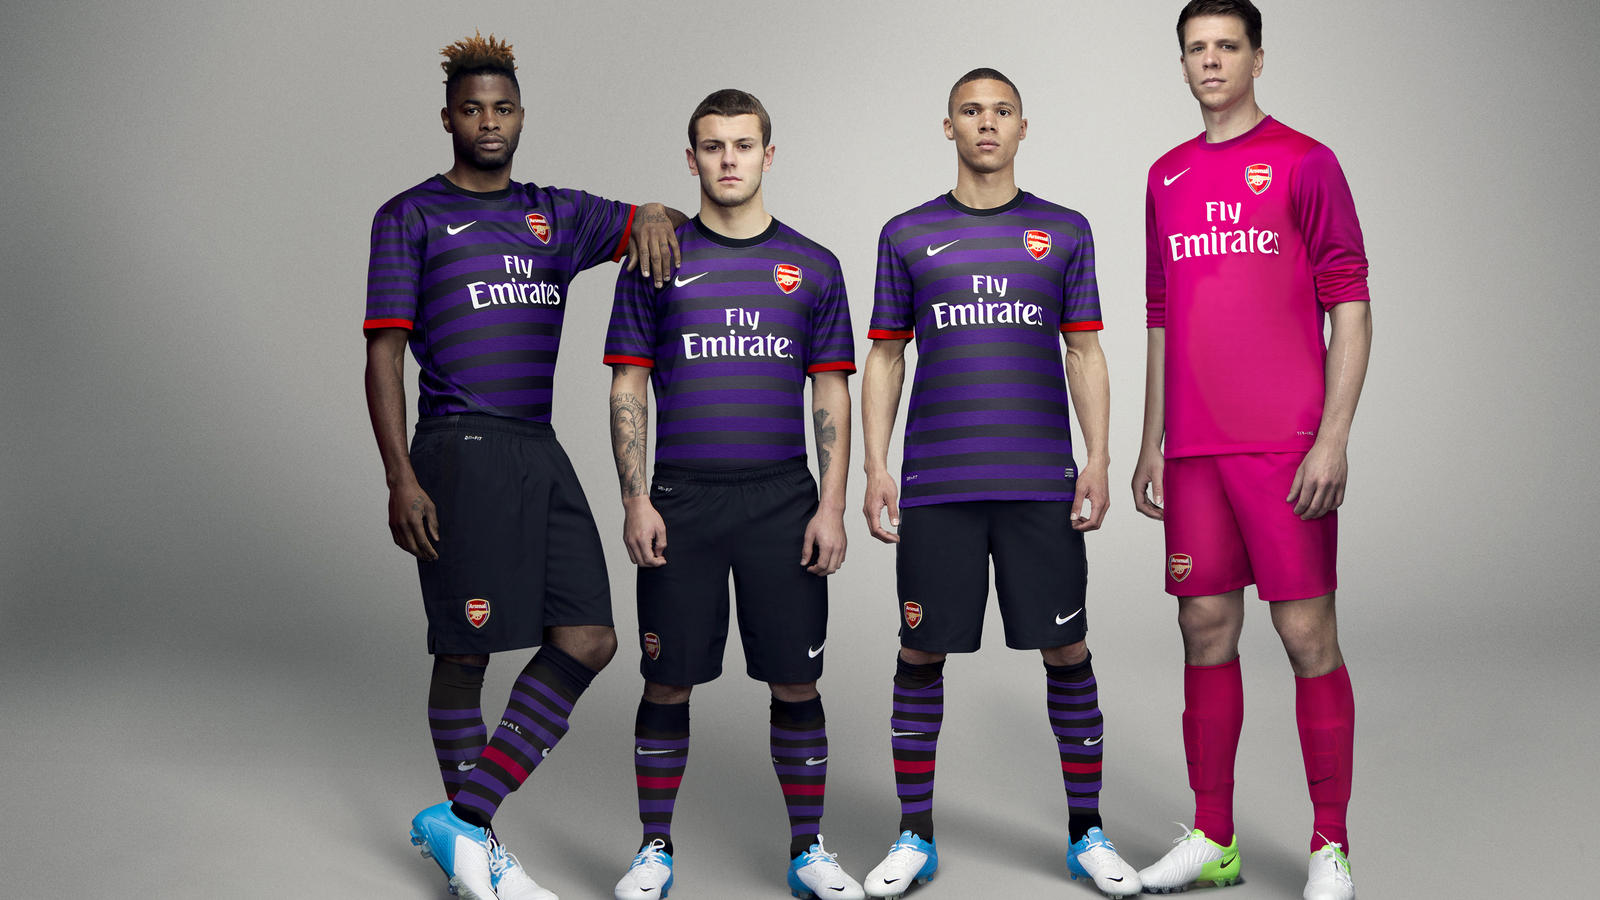 newest fd363 aefe4 Nike unveils Arsenal Football Club Away kit for 2012-13 ...